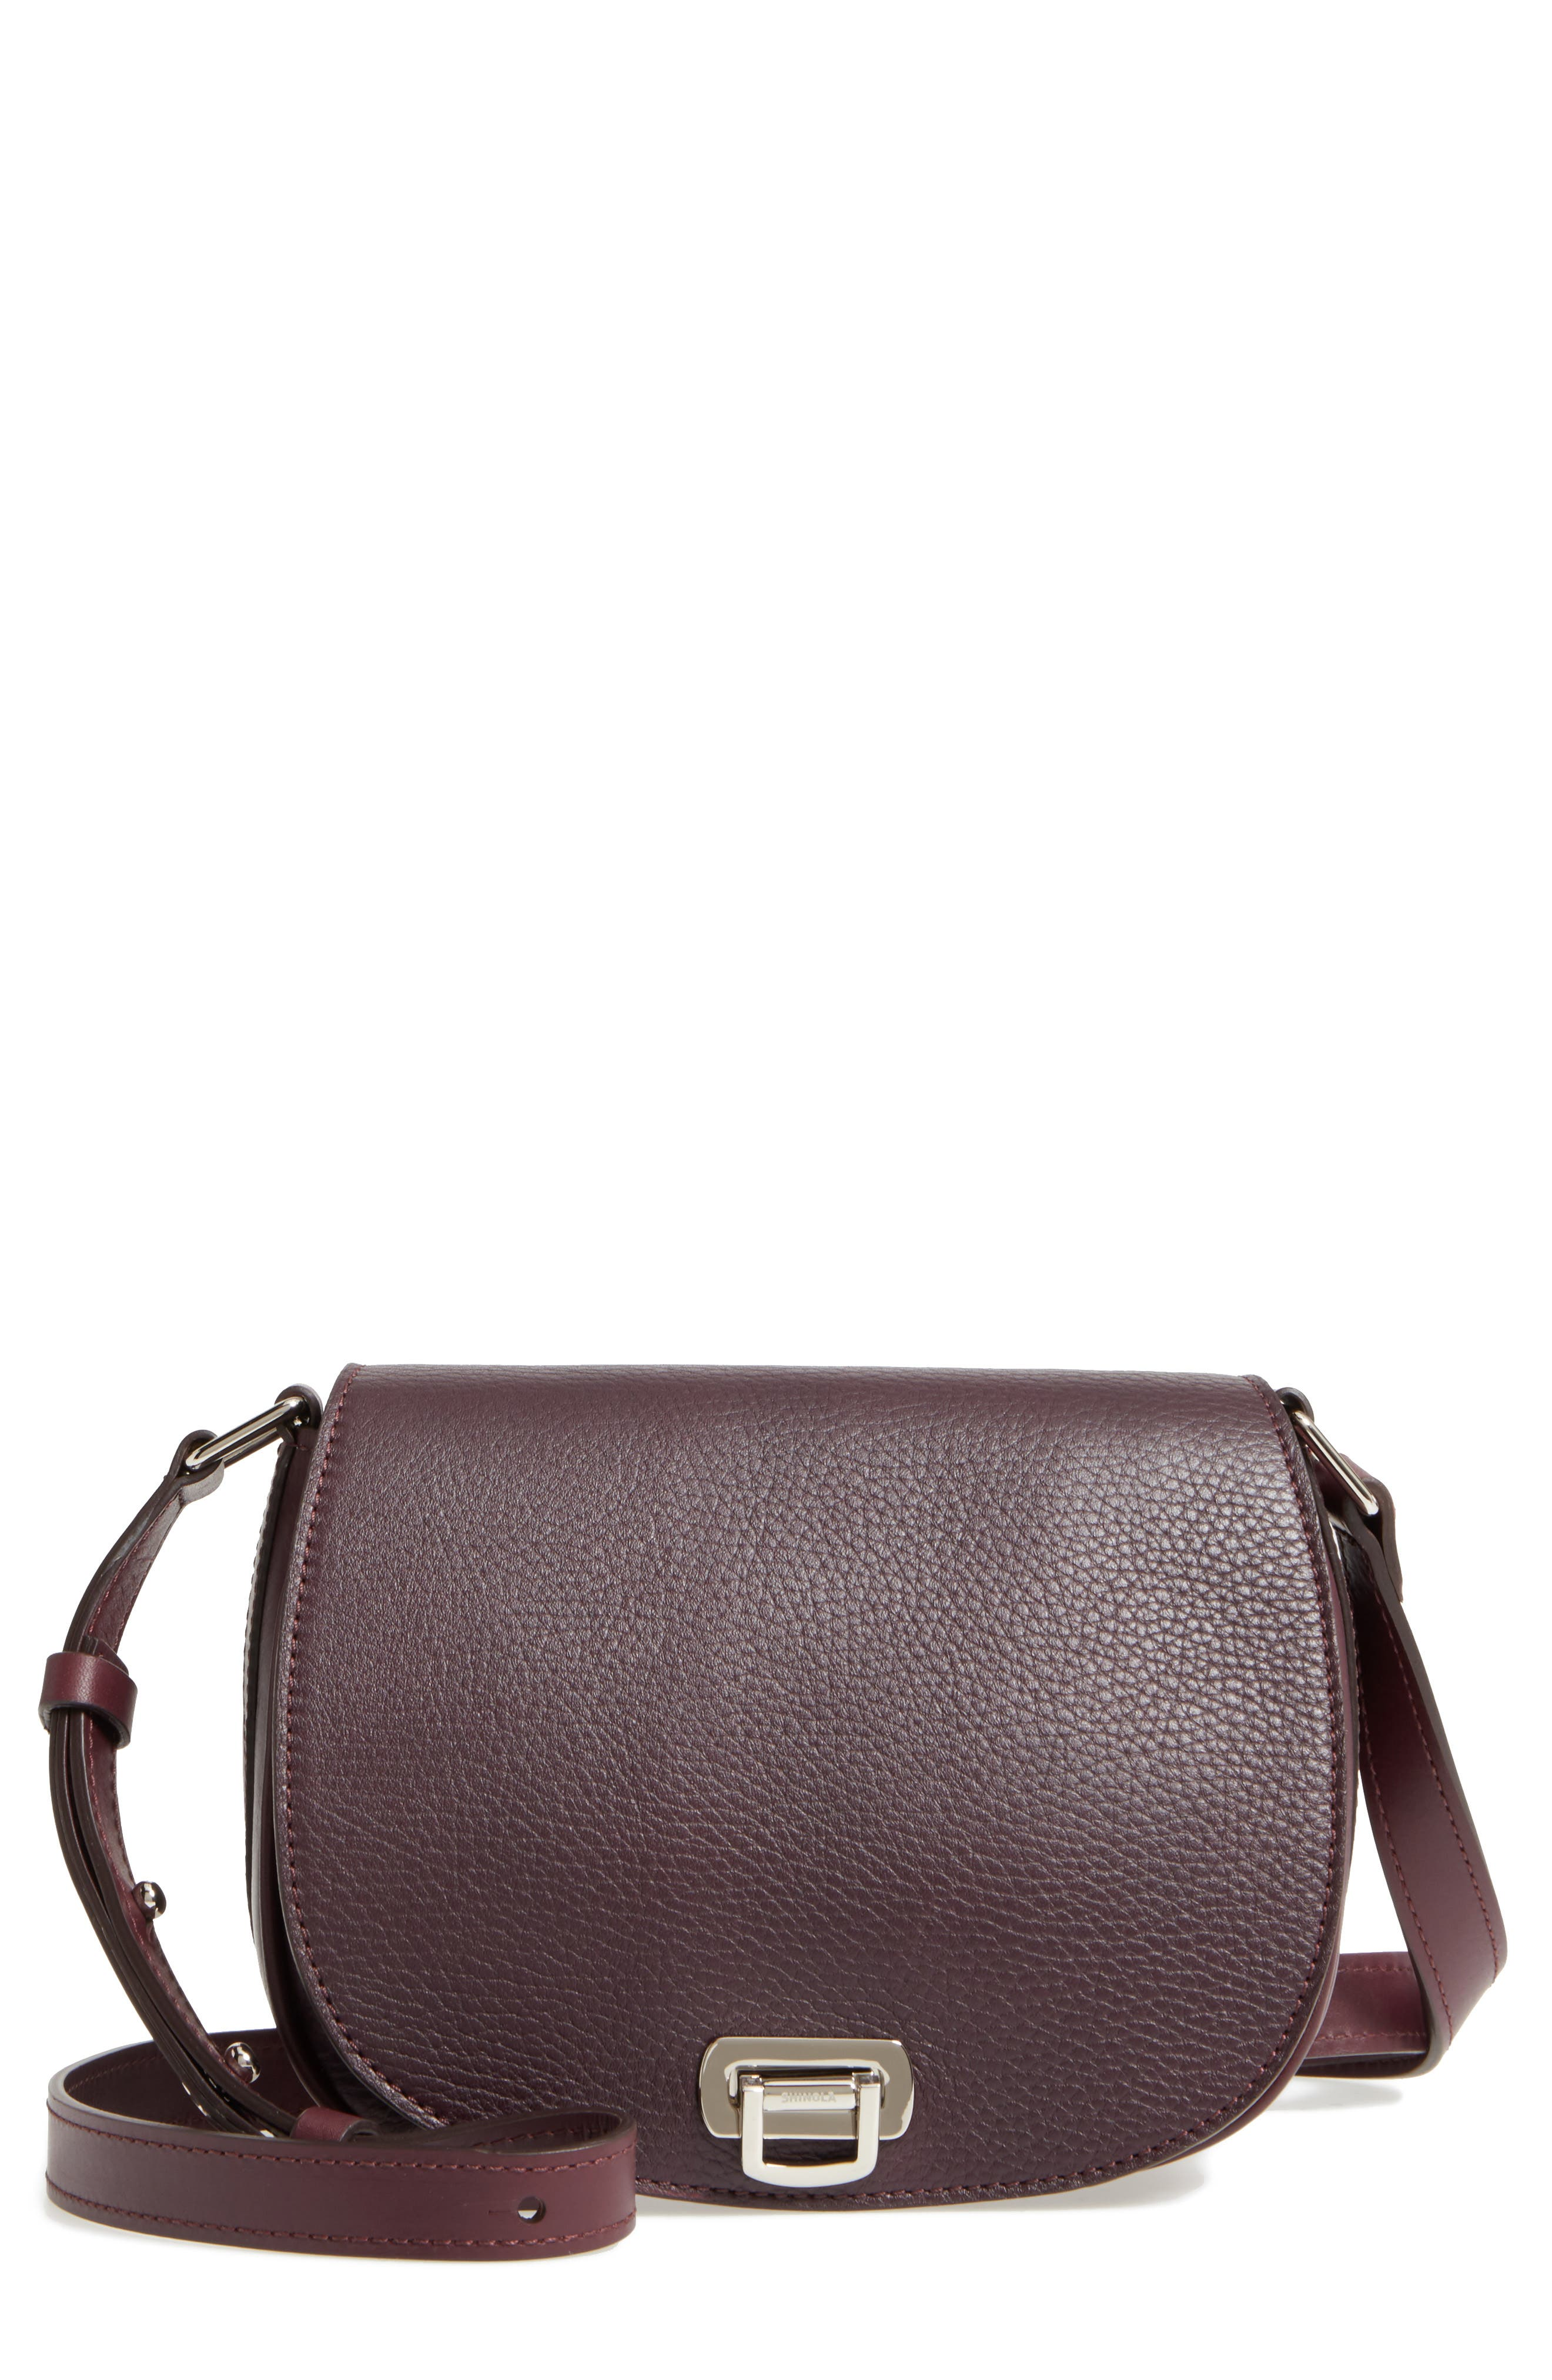 Calfskin Leather Shoulder Bag,                         Main,                         color, Aubergine